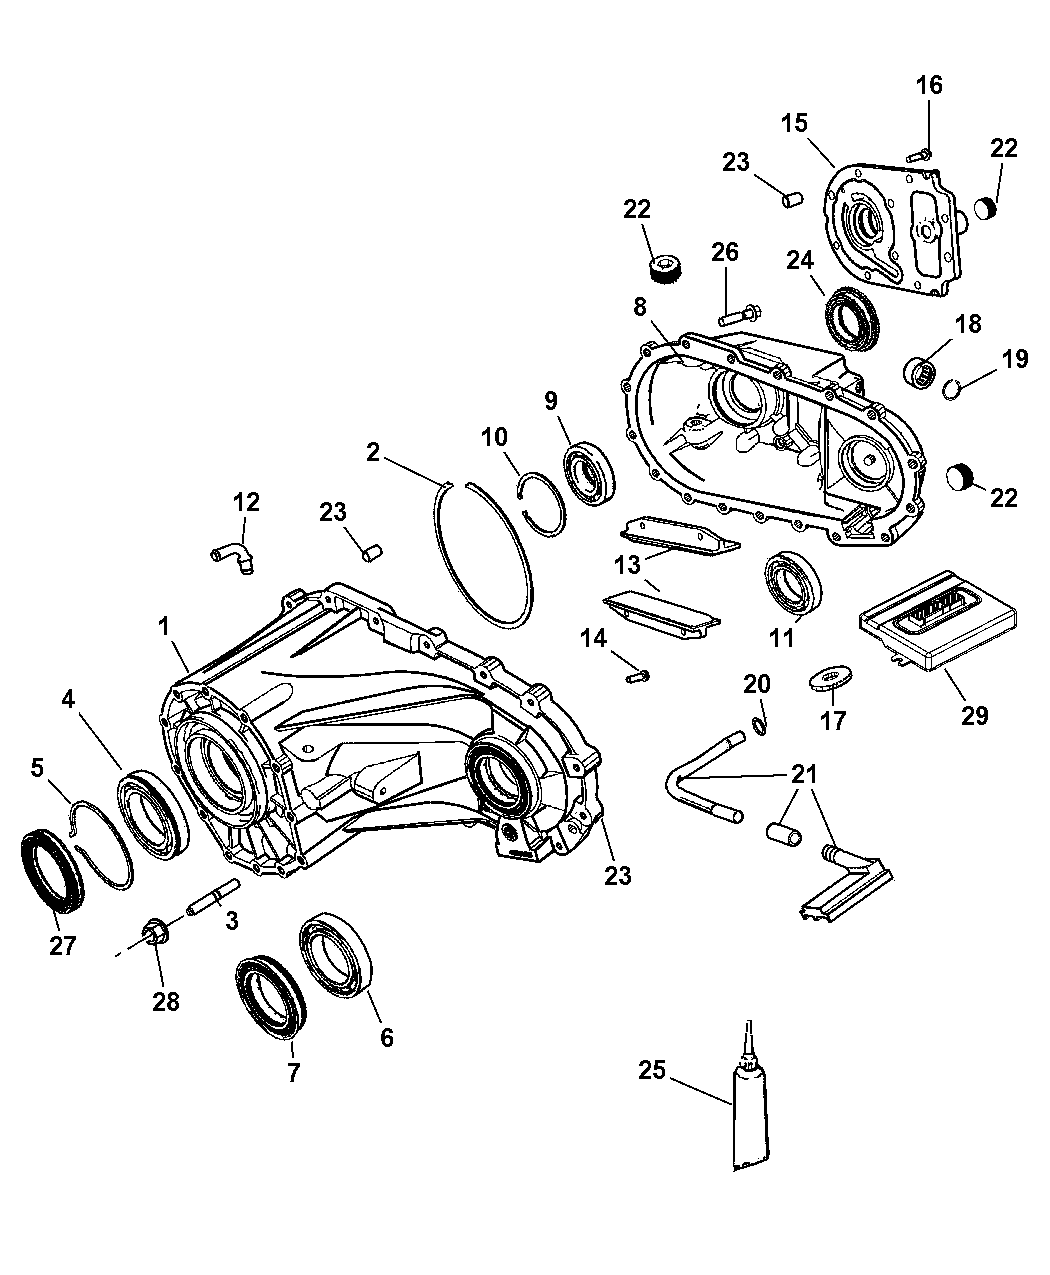 2009 Jeep Commander Case & Related Parts - Thumbnail 1